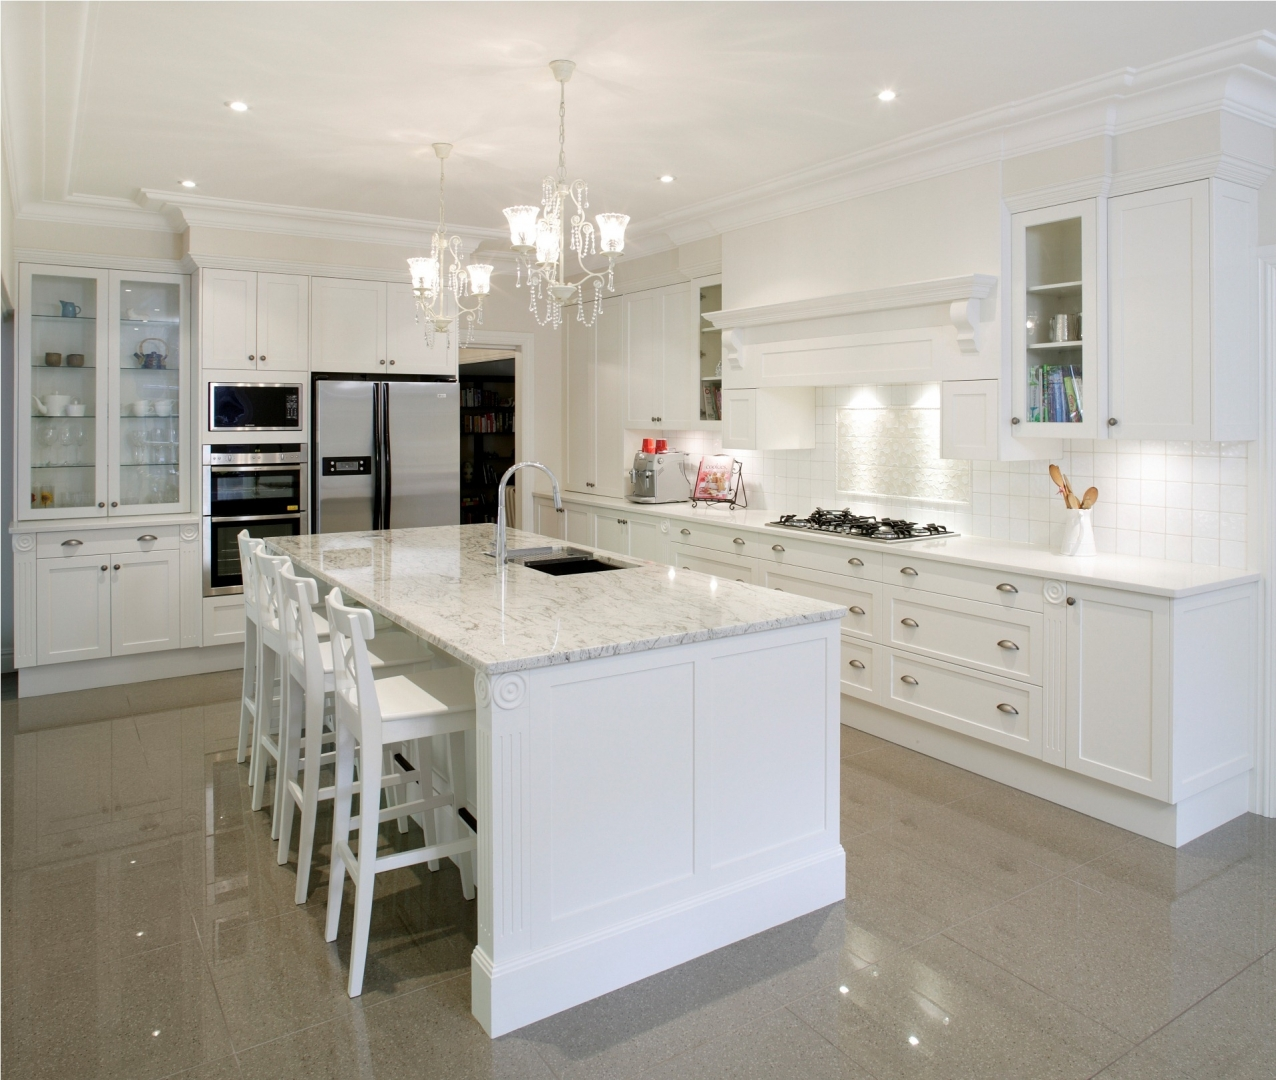 White On White Kitchen all white kitchens: is this trend here to stay? - modernize